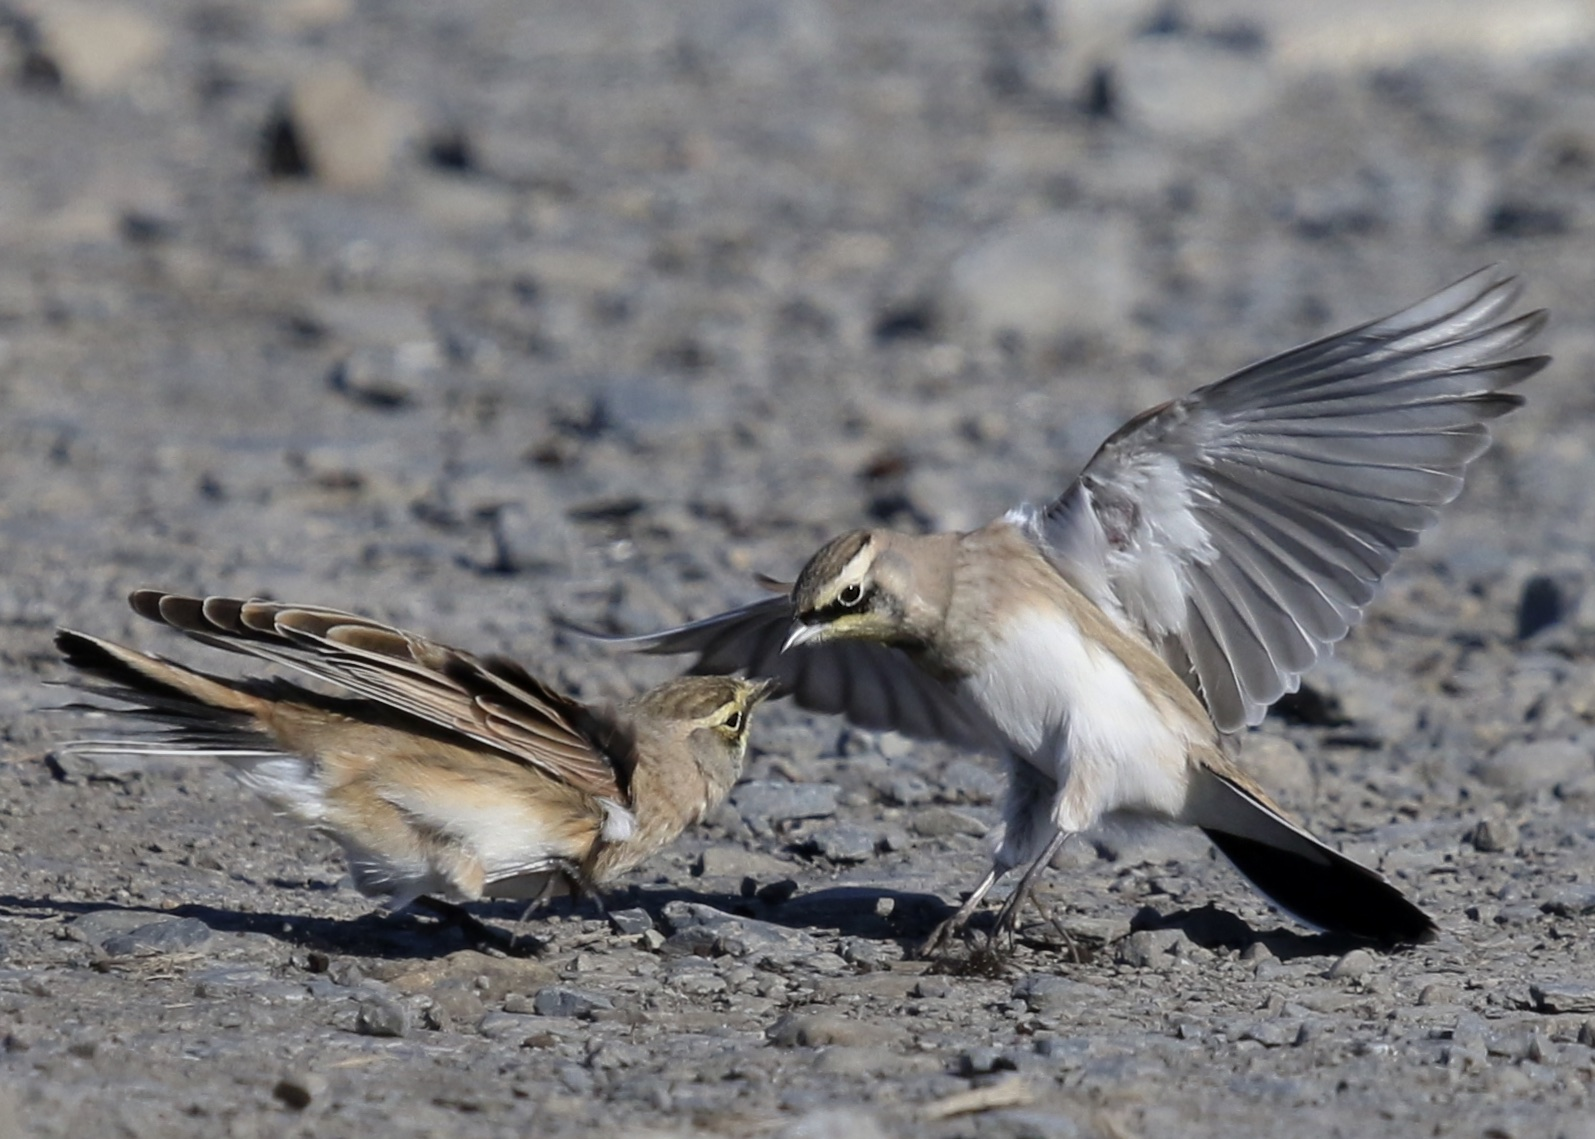 I just love these Horned Larks and I I was trying to get some more interesting photos of them today. I was trying to anticipate when the birds would interact like this. Black Dirt Region, 11/22/14.